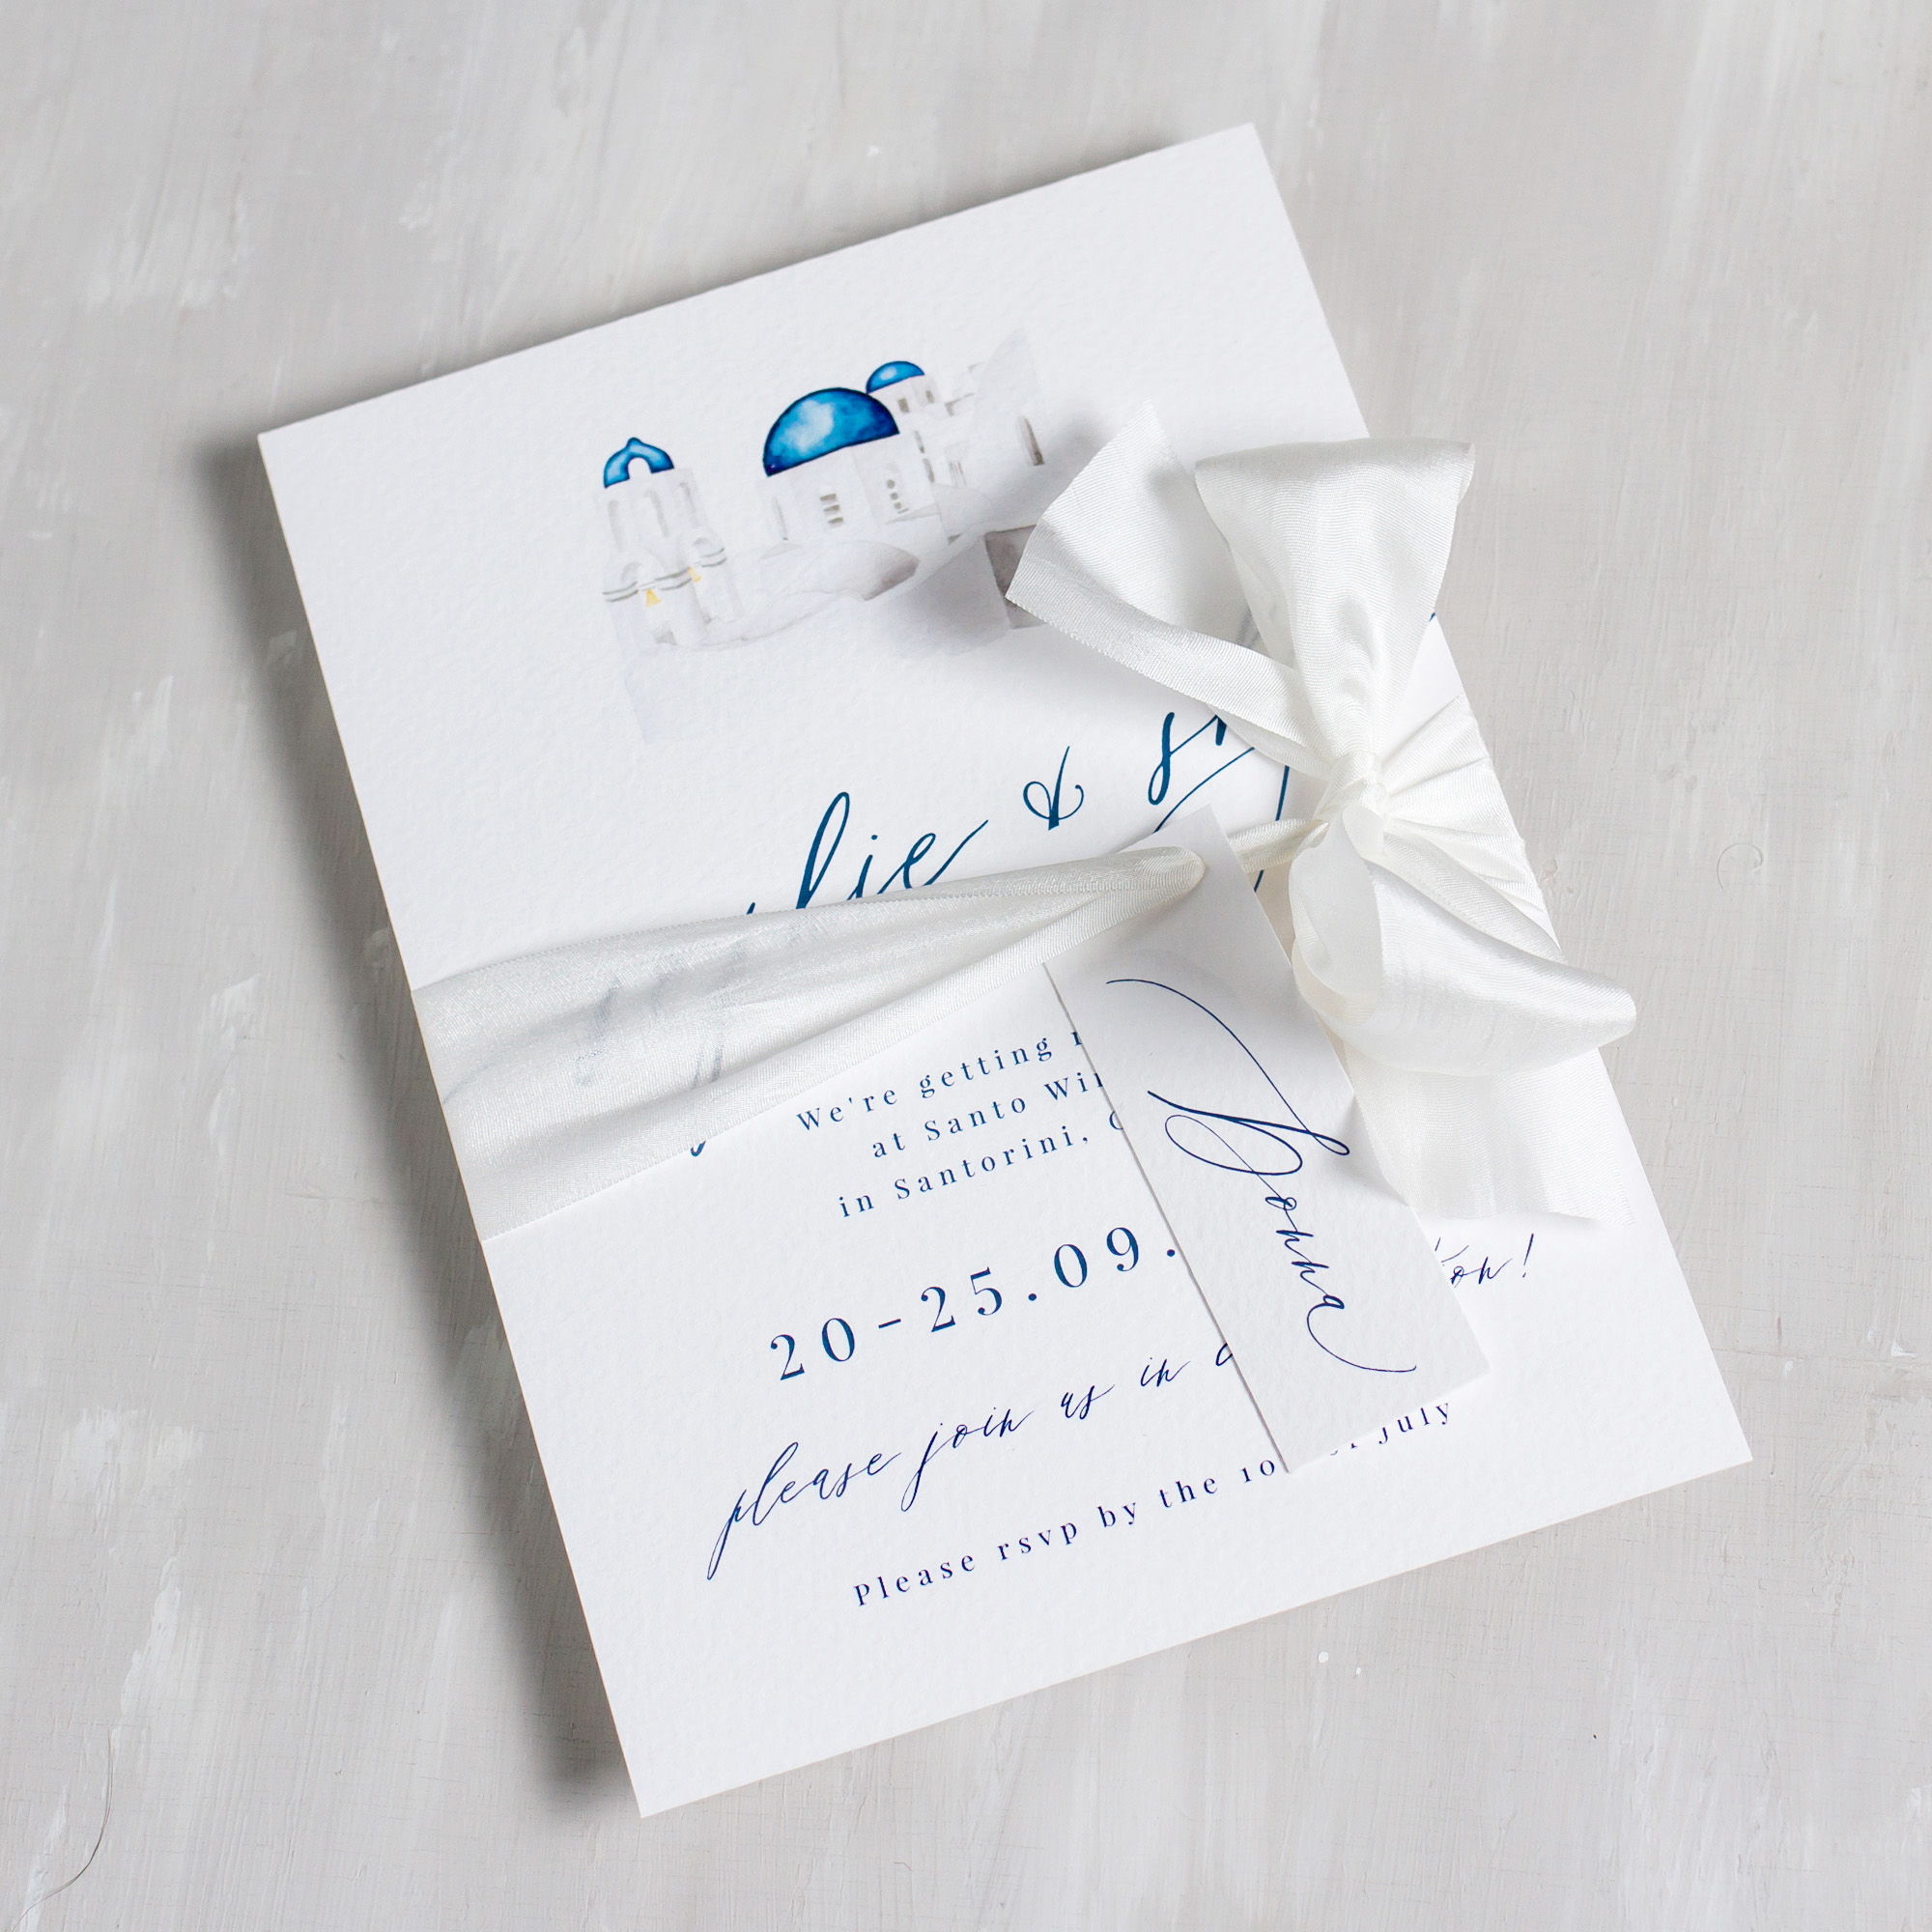 Santorini-Personalised-Venue-Illustration-Calligraphy-Style-Wedding-Stationery-Luxury-Unique-Hand-Painted-Wedding-Invitation-Parcel-Locale.jpg